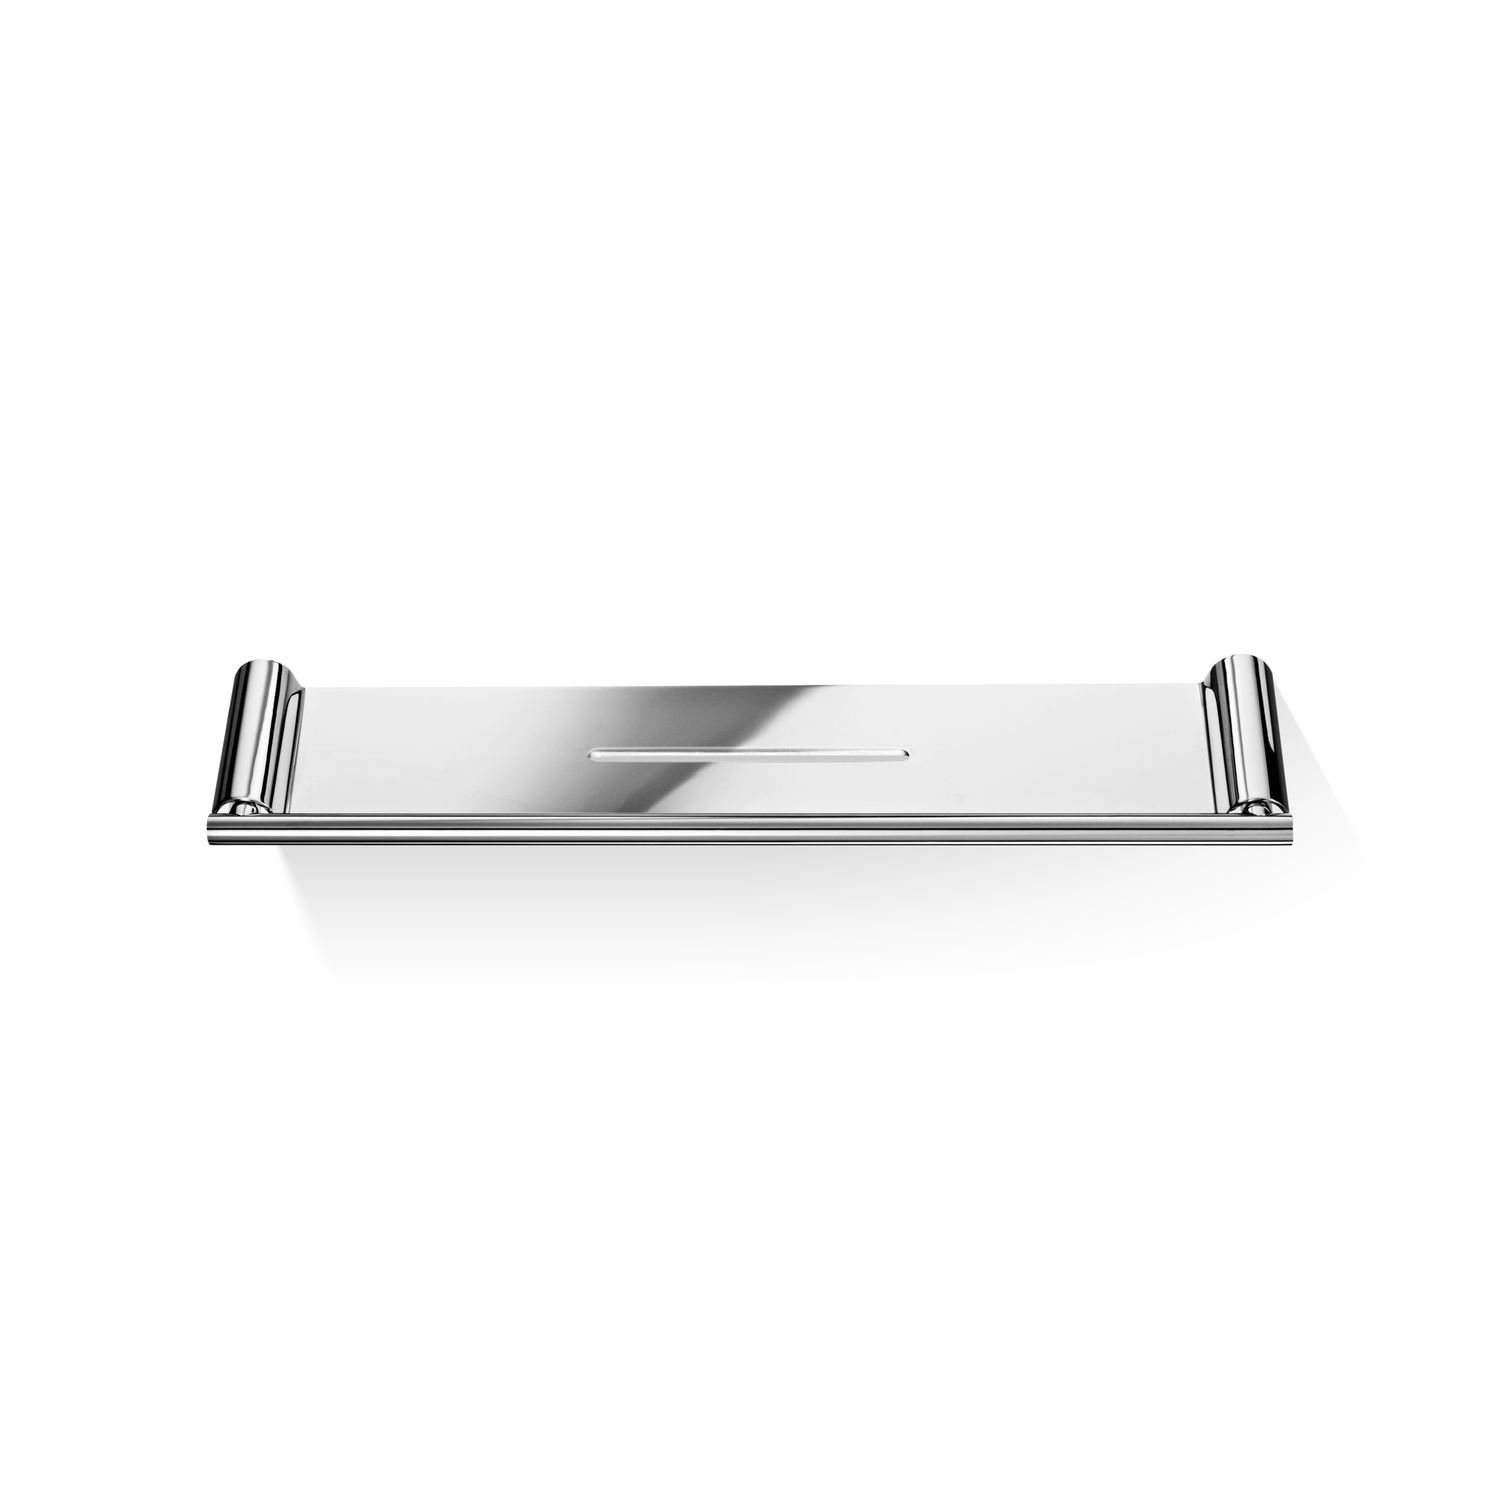 Wall-mounted shelf / contemporary / stainless steel / chrome-plated ...